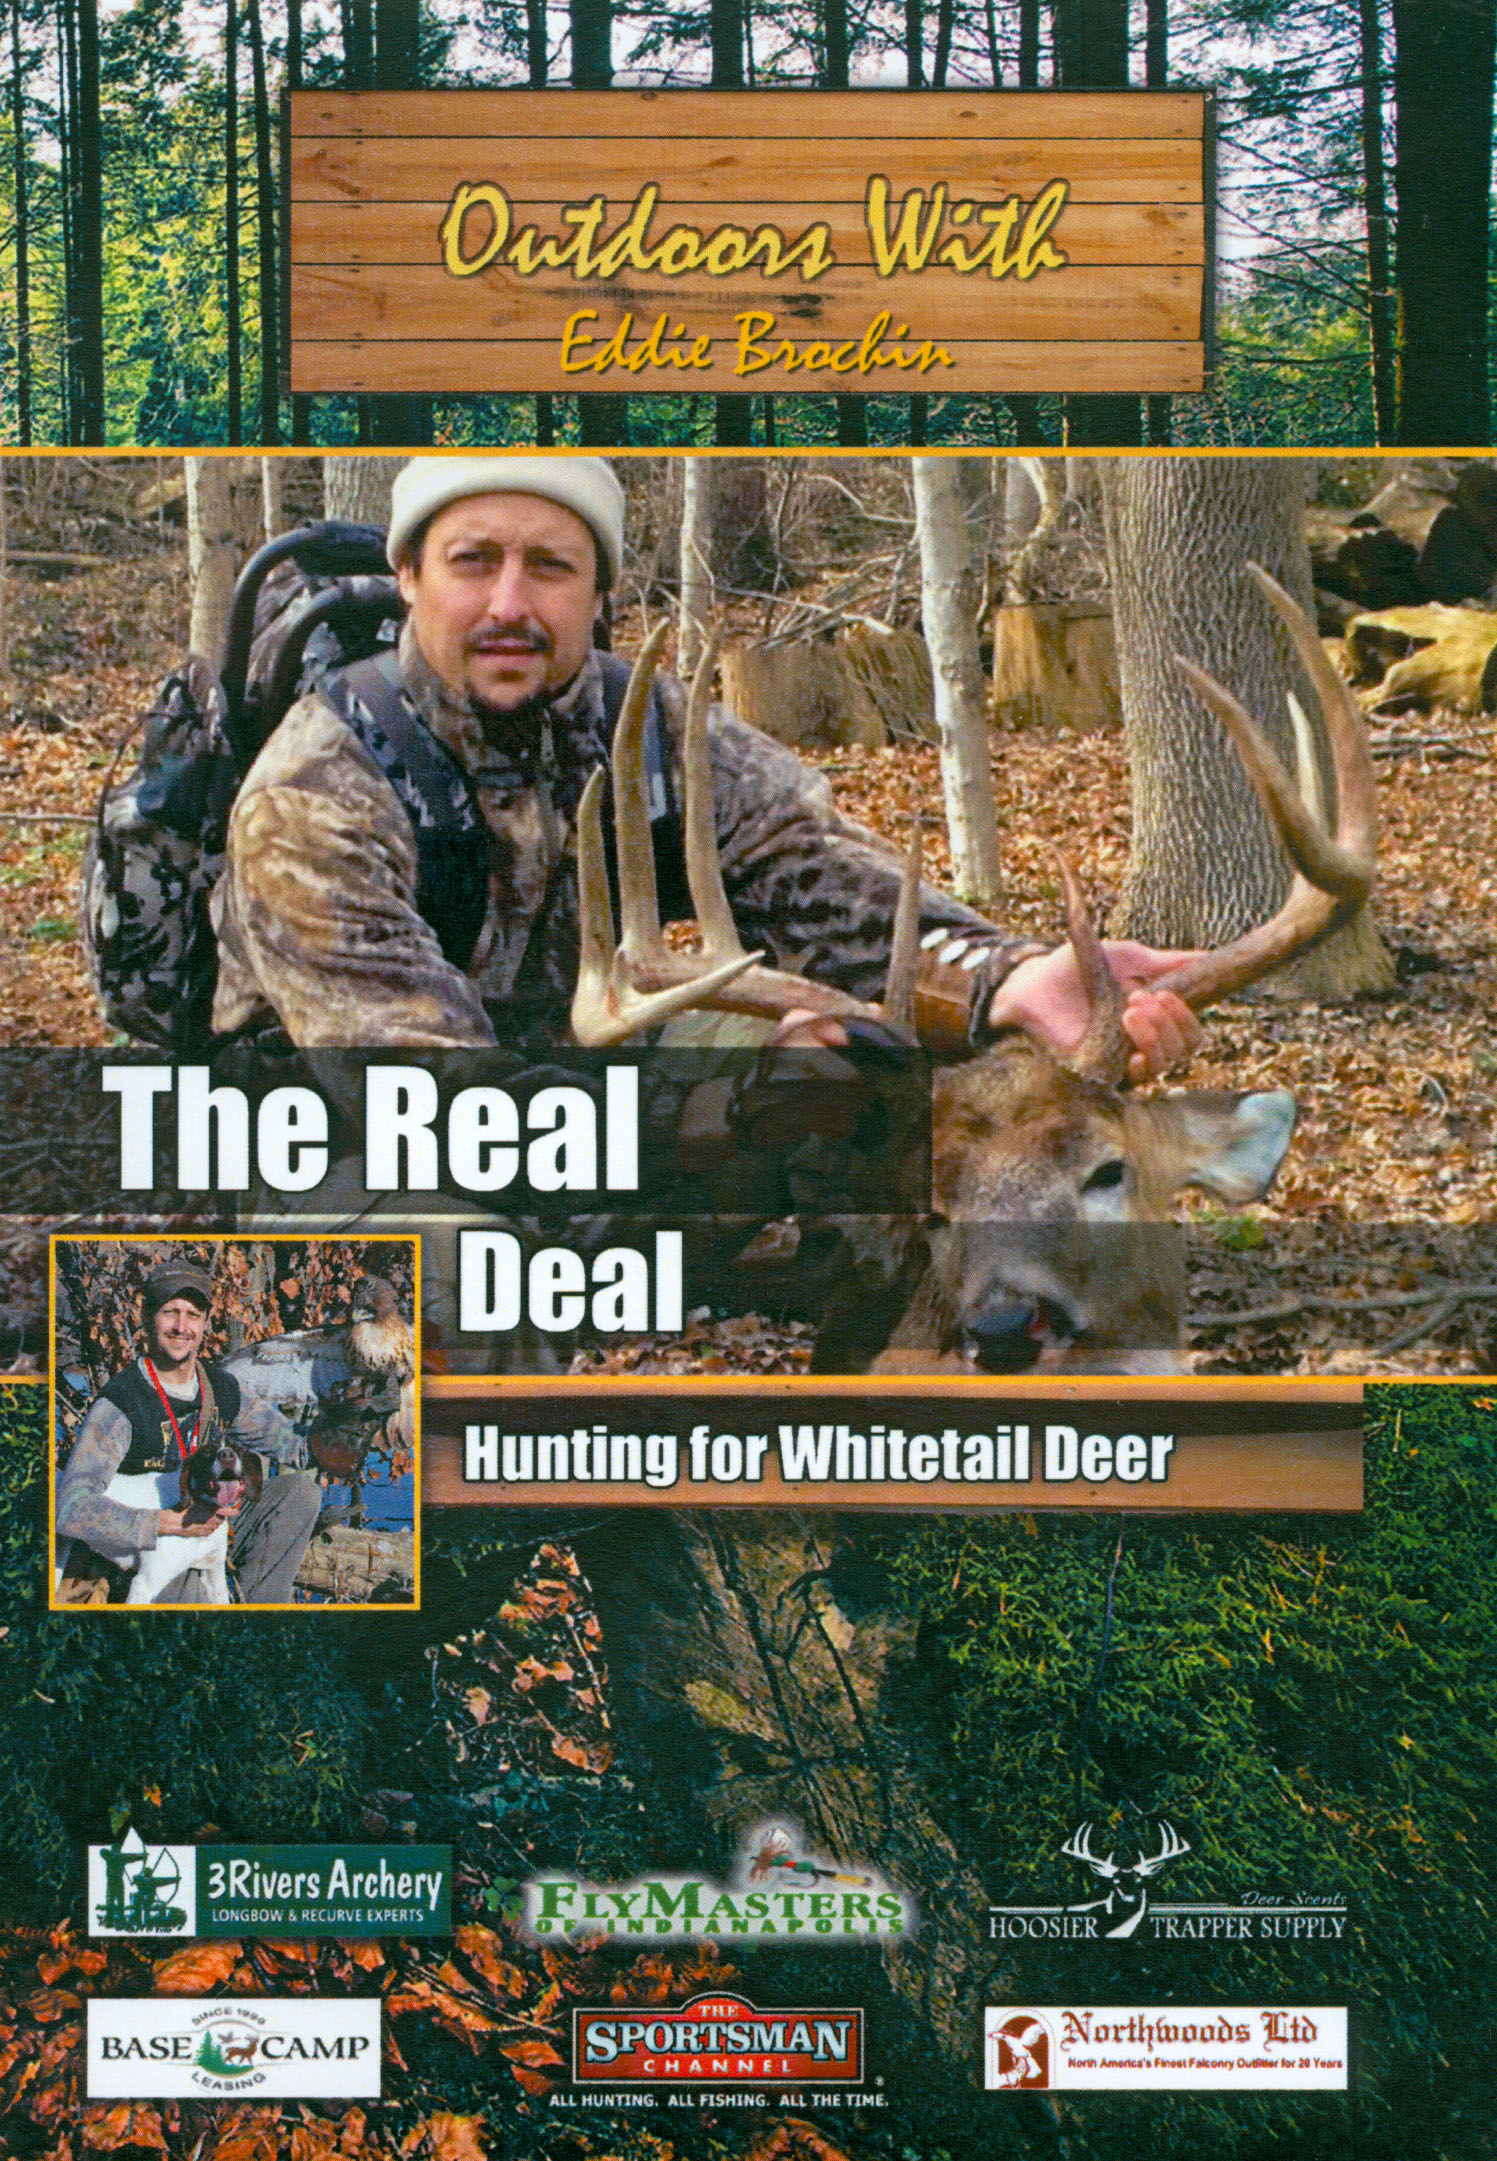 Outdoors With Eddie Brochin: The Real Deal